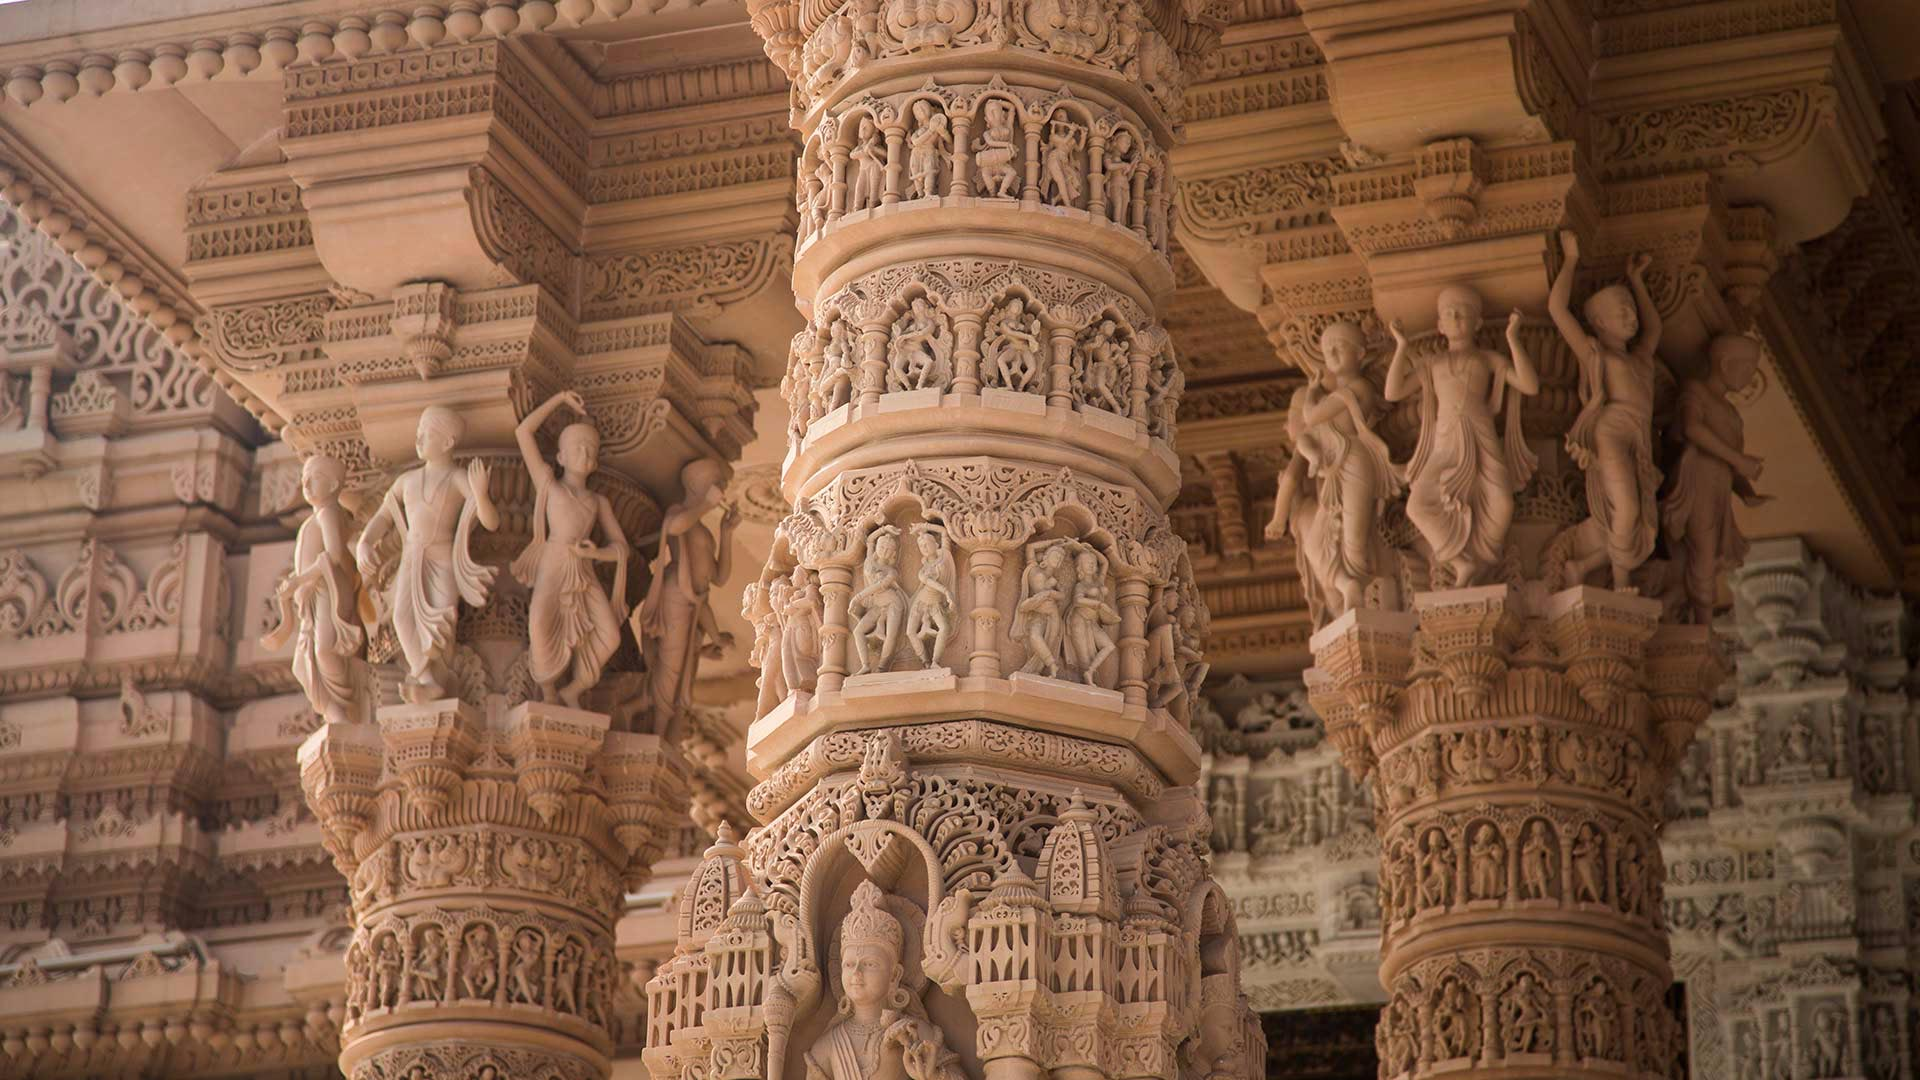 Visit the swaminarayan akshardham temple delhi